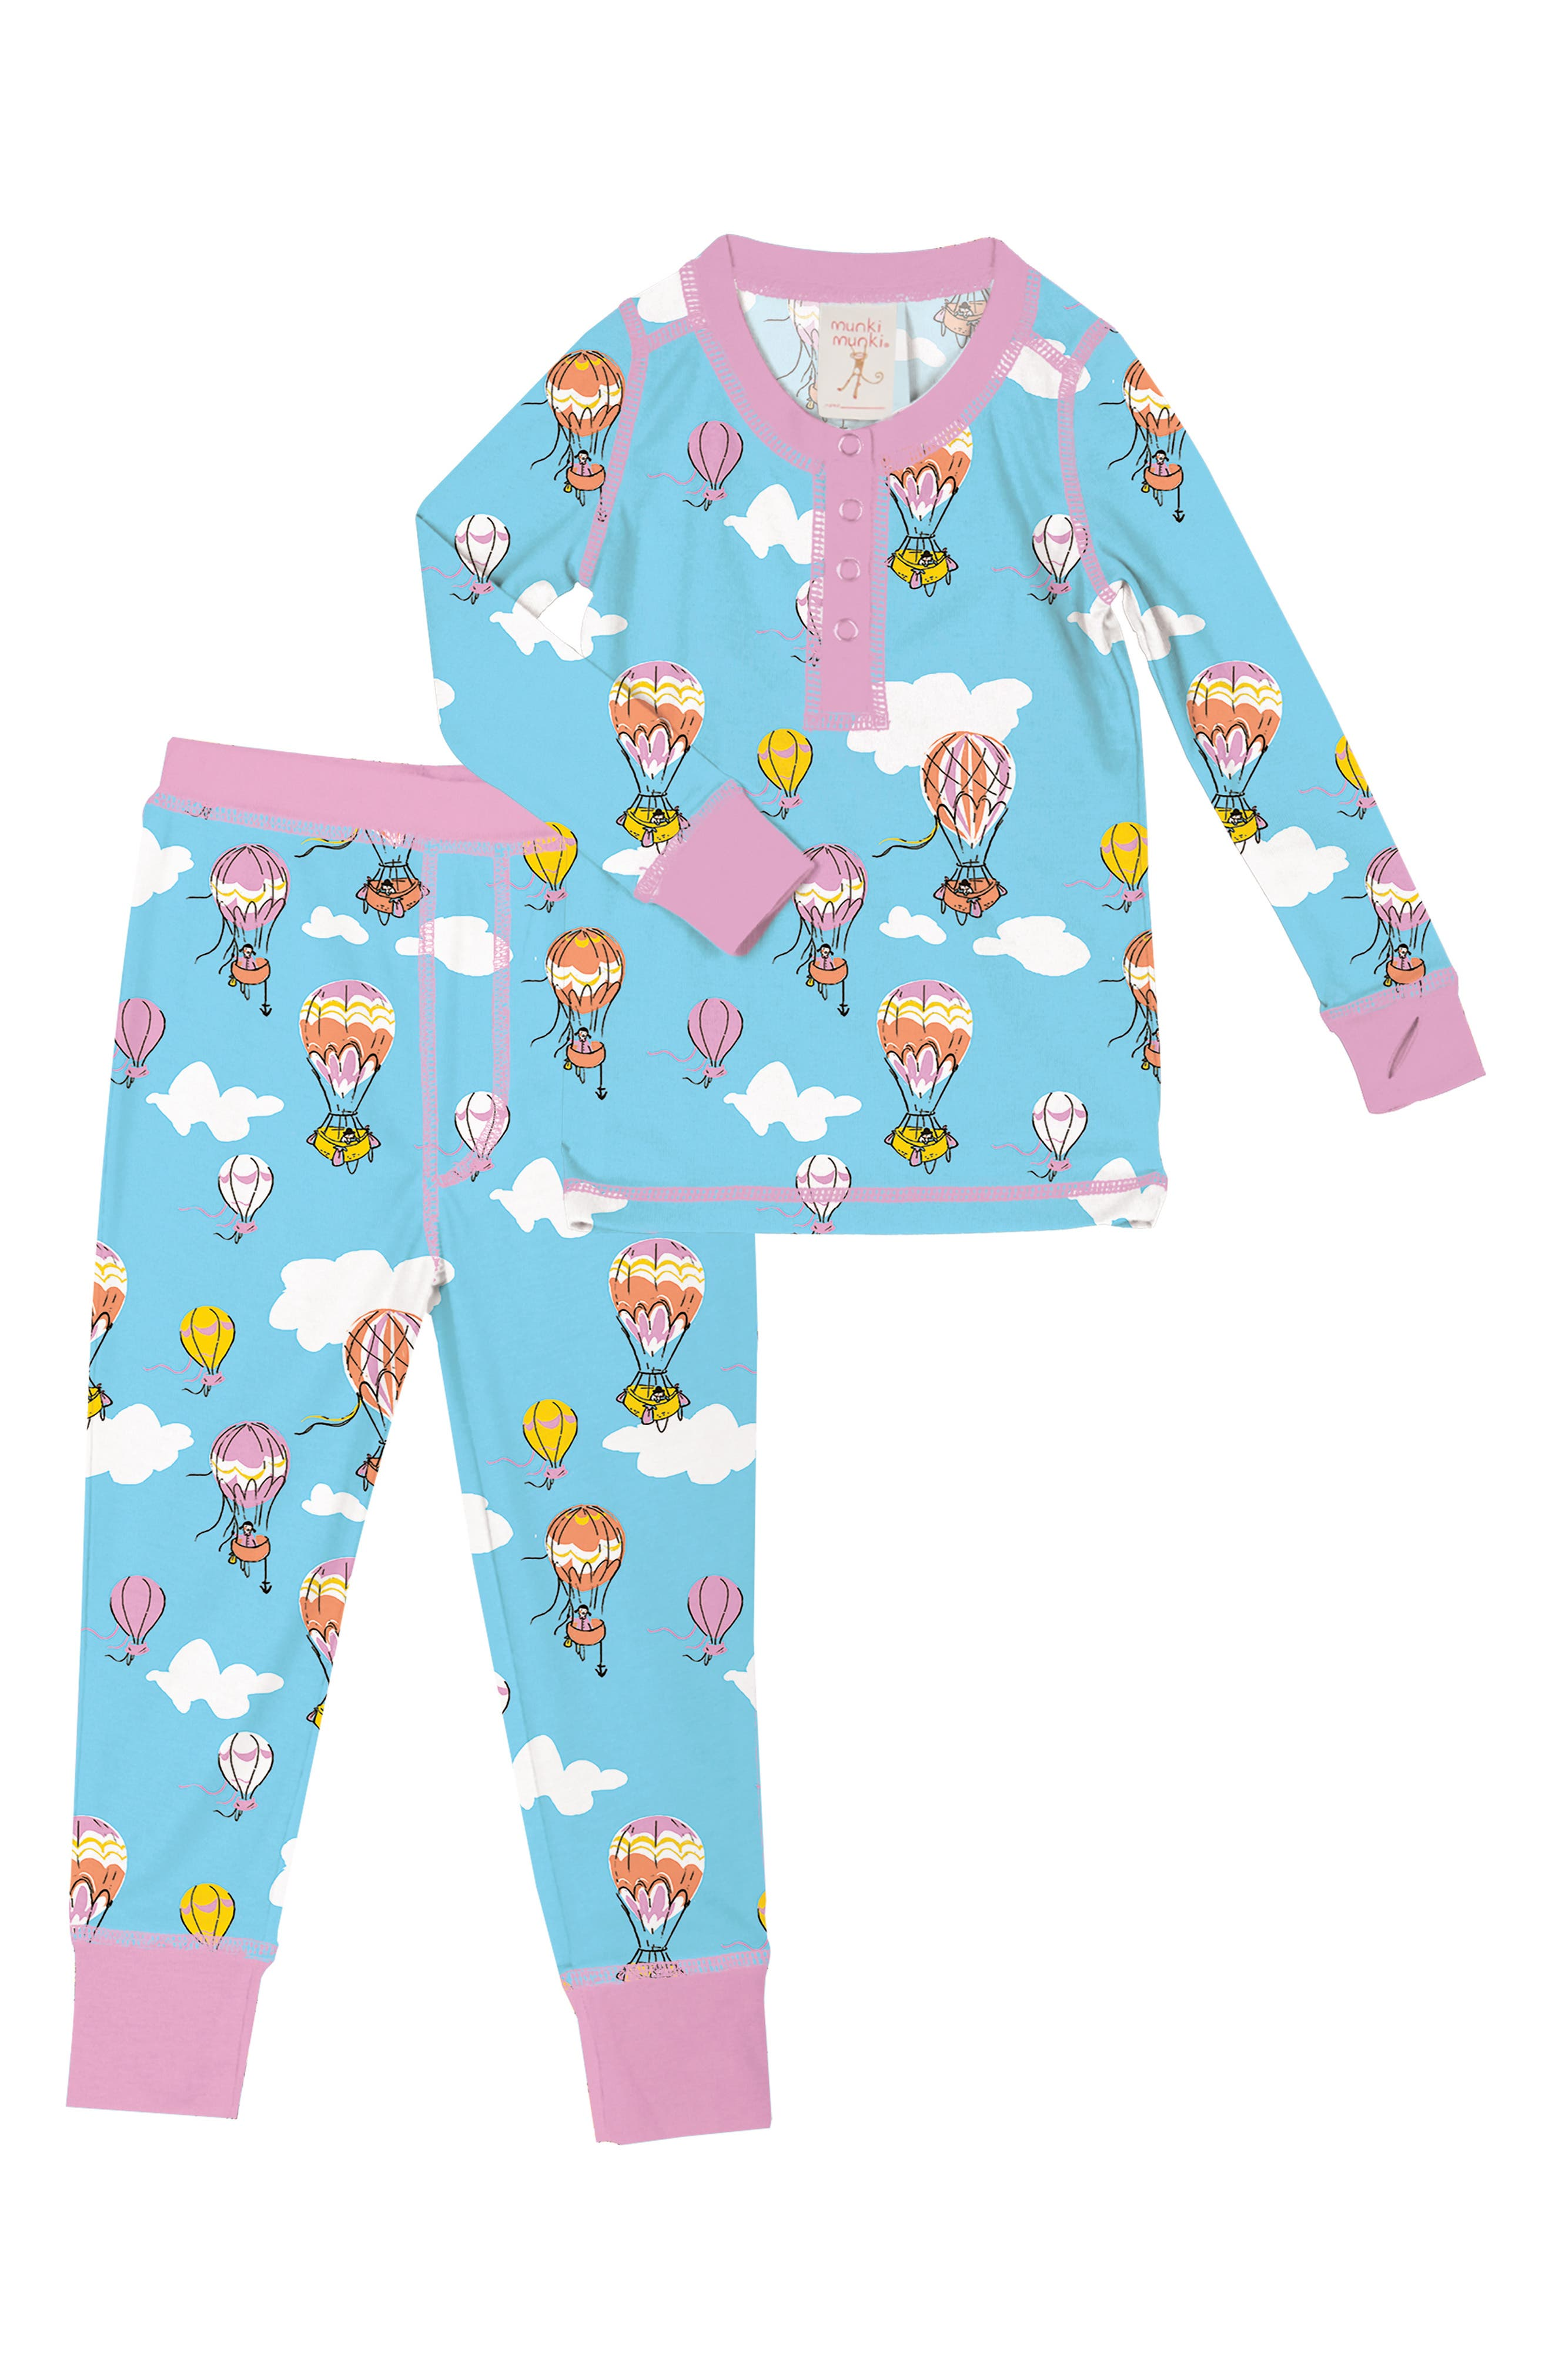 Hot Air Balloon Fitted Two-Piece Pajamas,                             Main thumbnail 1, color,                             BLUE